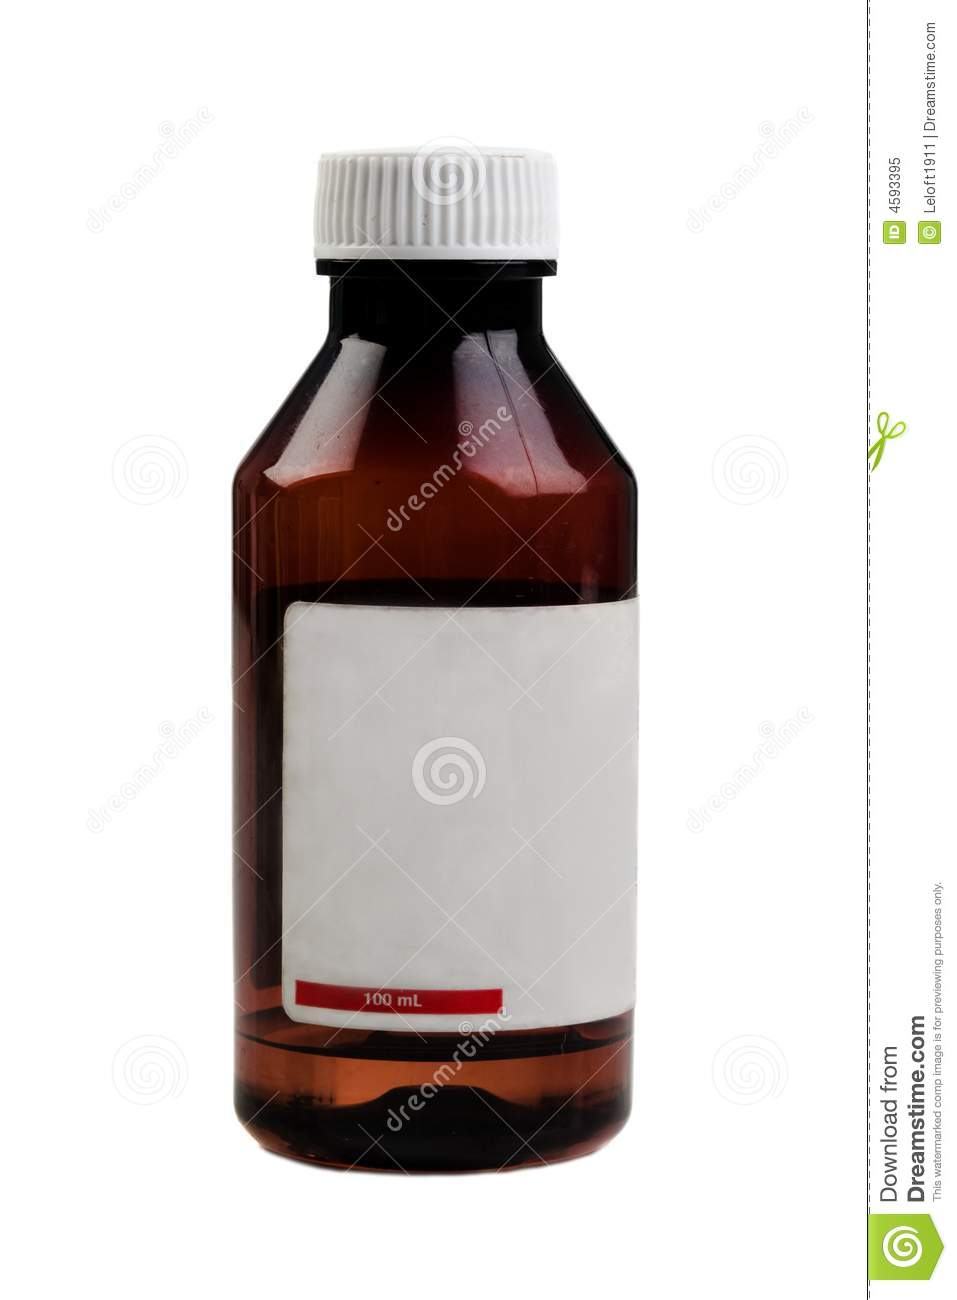 Photos Of Small Living Rooms Decorated: Small Medical Bottle On A White Background Royalty Free